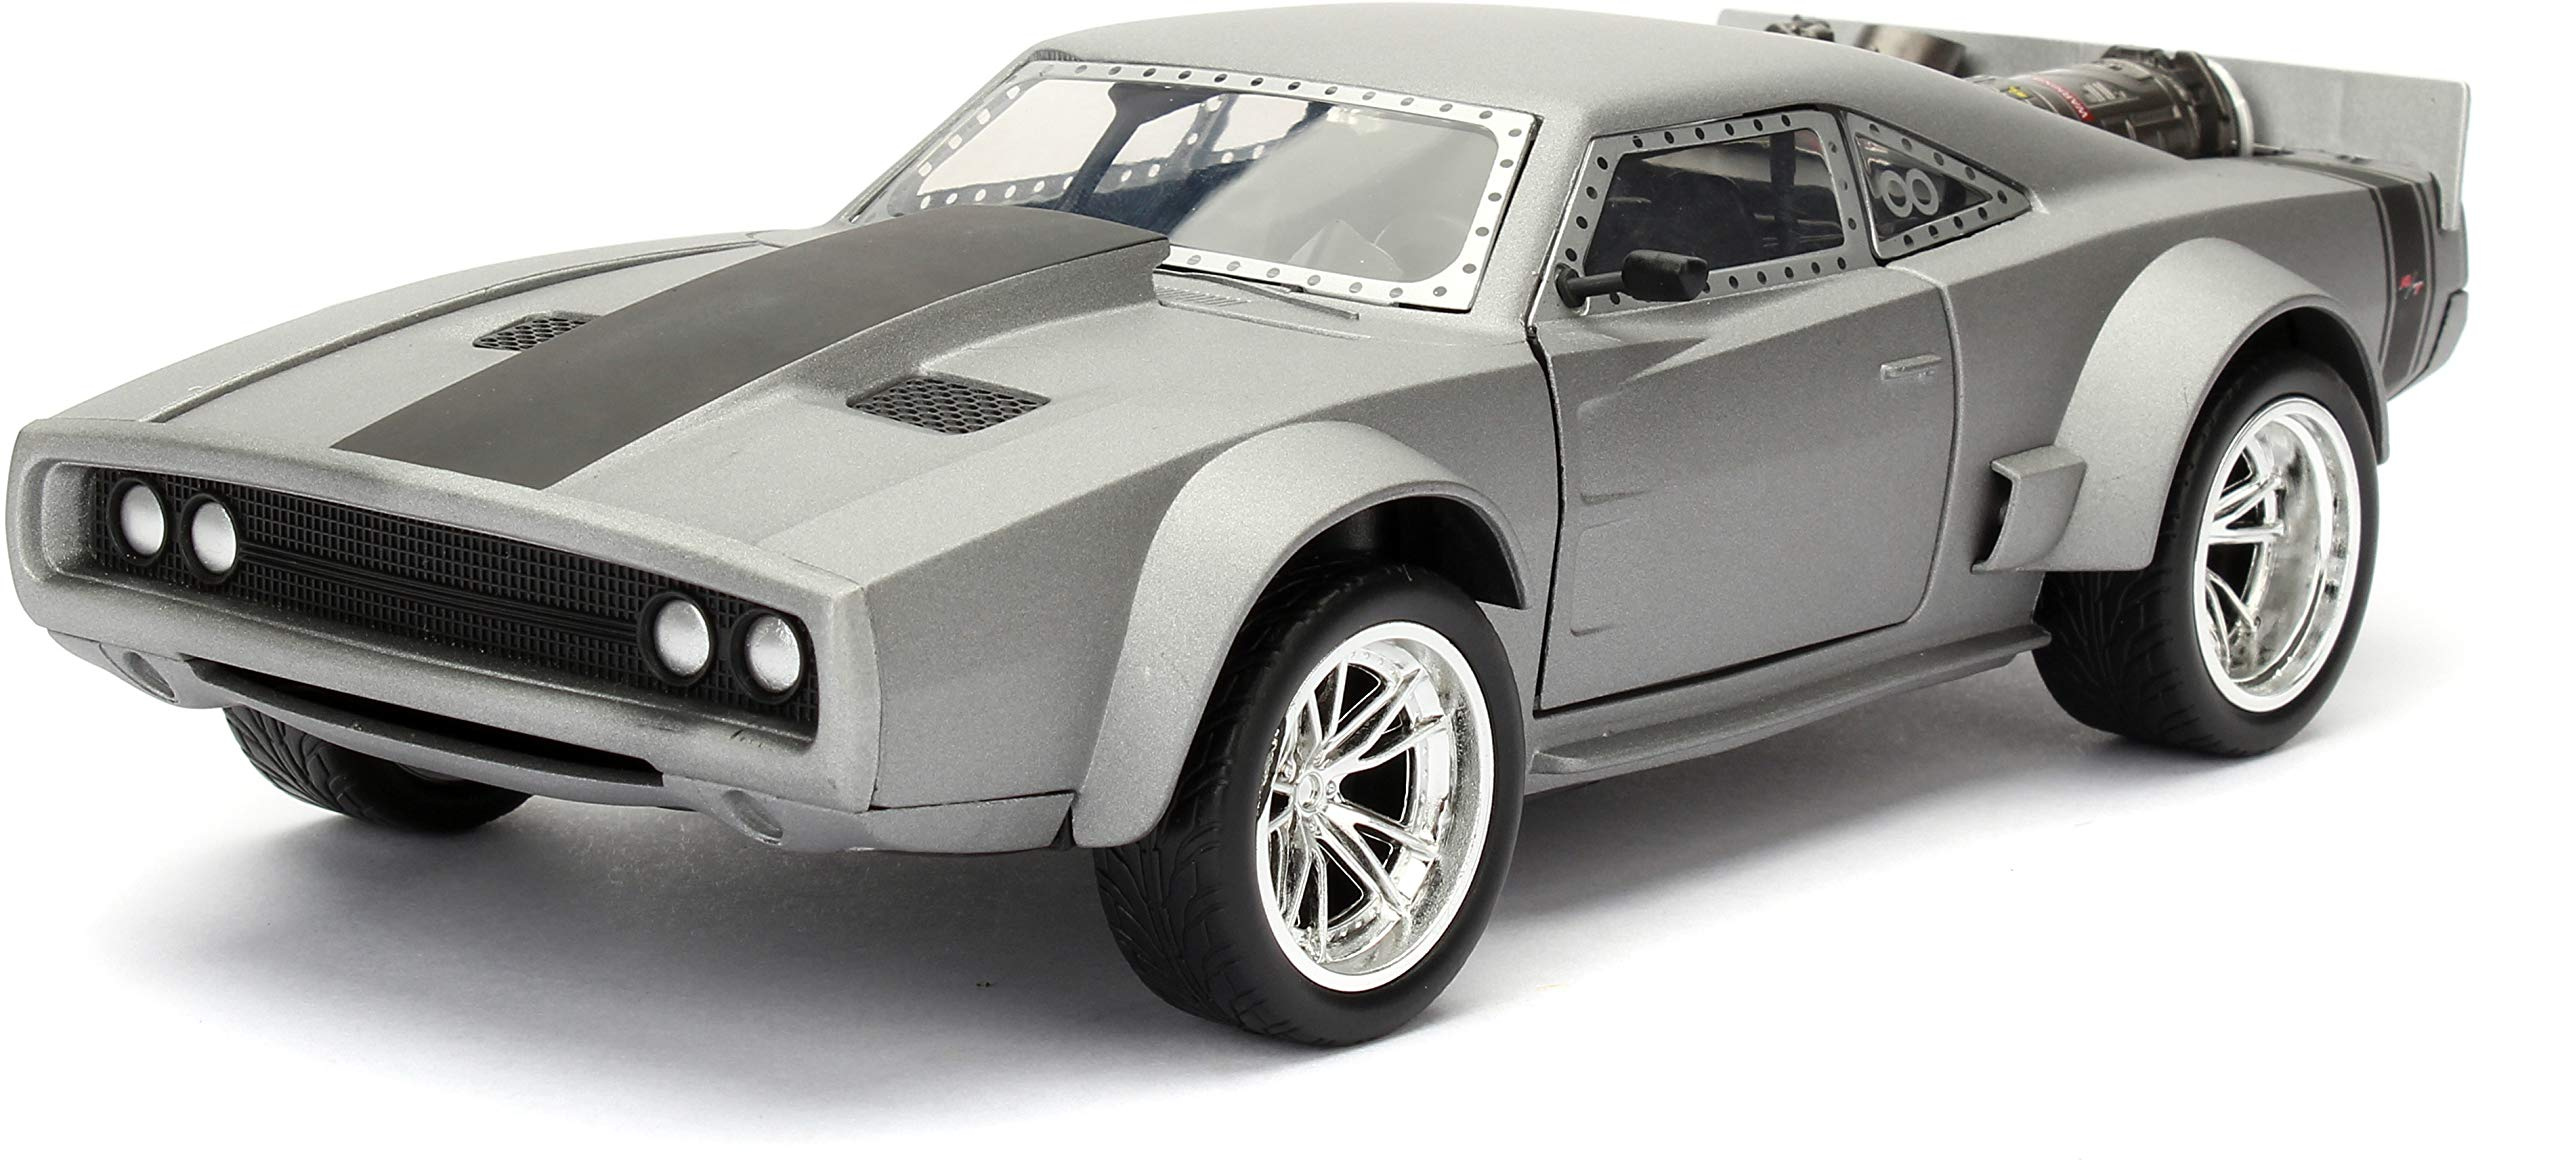 Jada Toys Fast & Furious 1:24 Dom's Ice Charger Die-cast Car, Toys for Kids and Adults, Silver (98291)